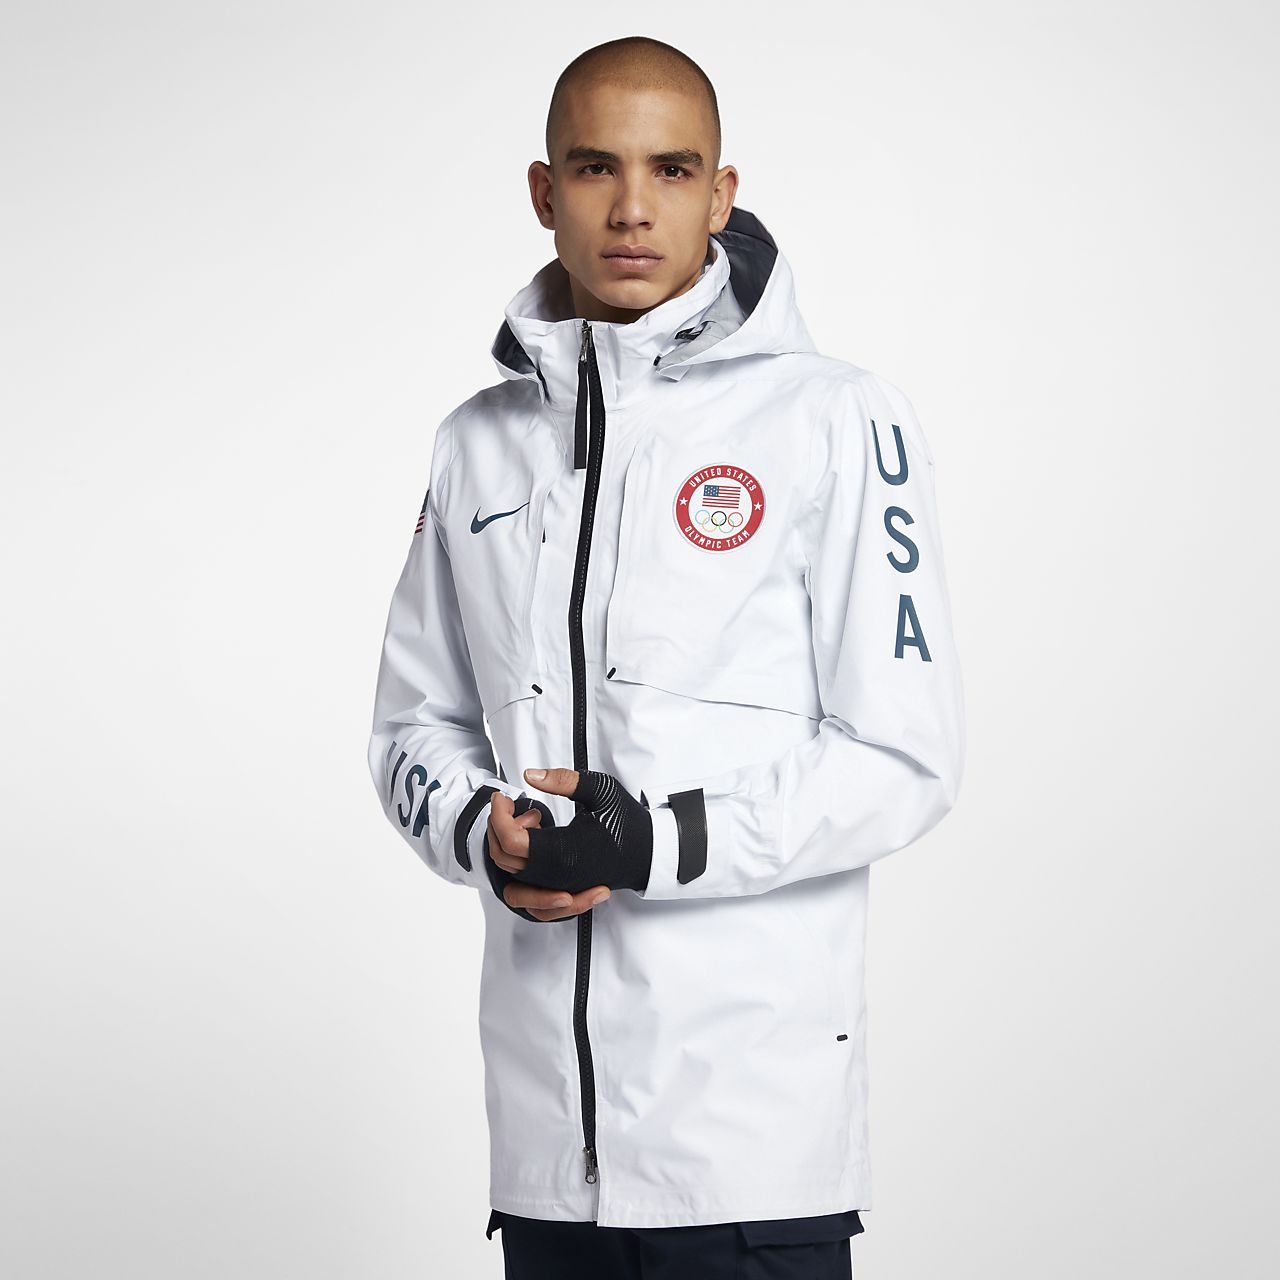 ... Nike USA Medal Stand Men's Jacket